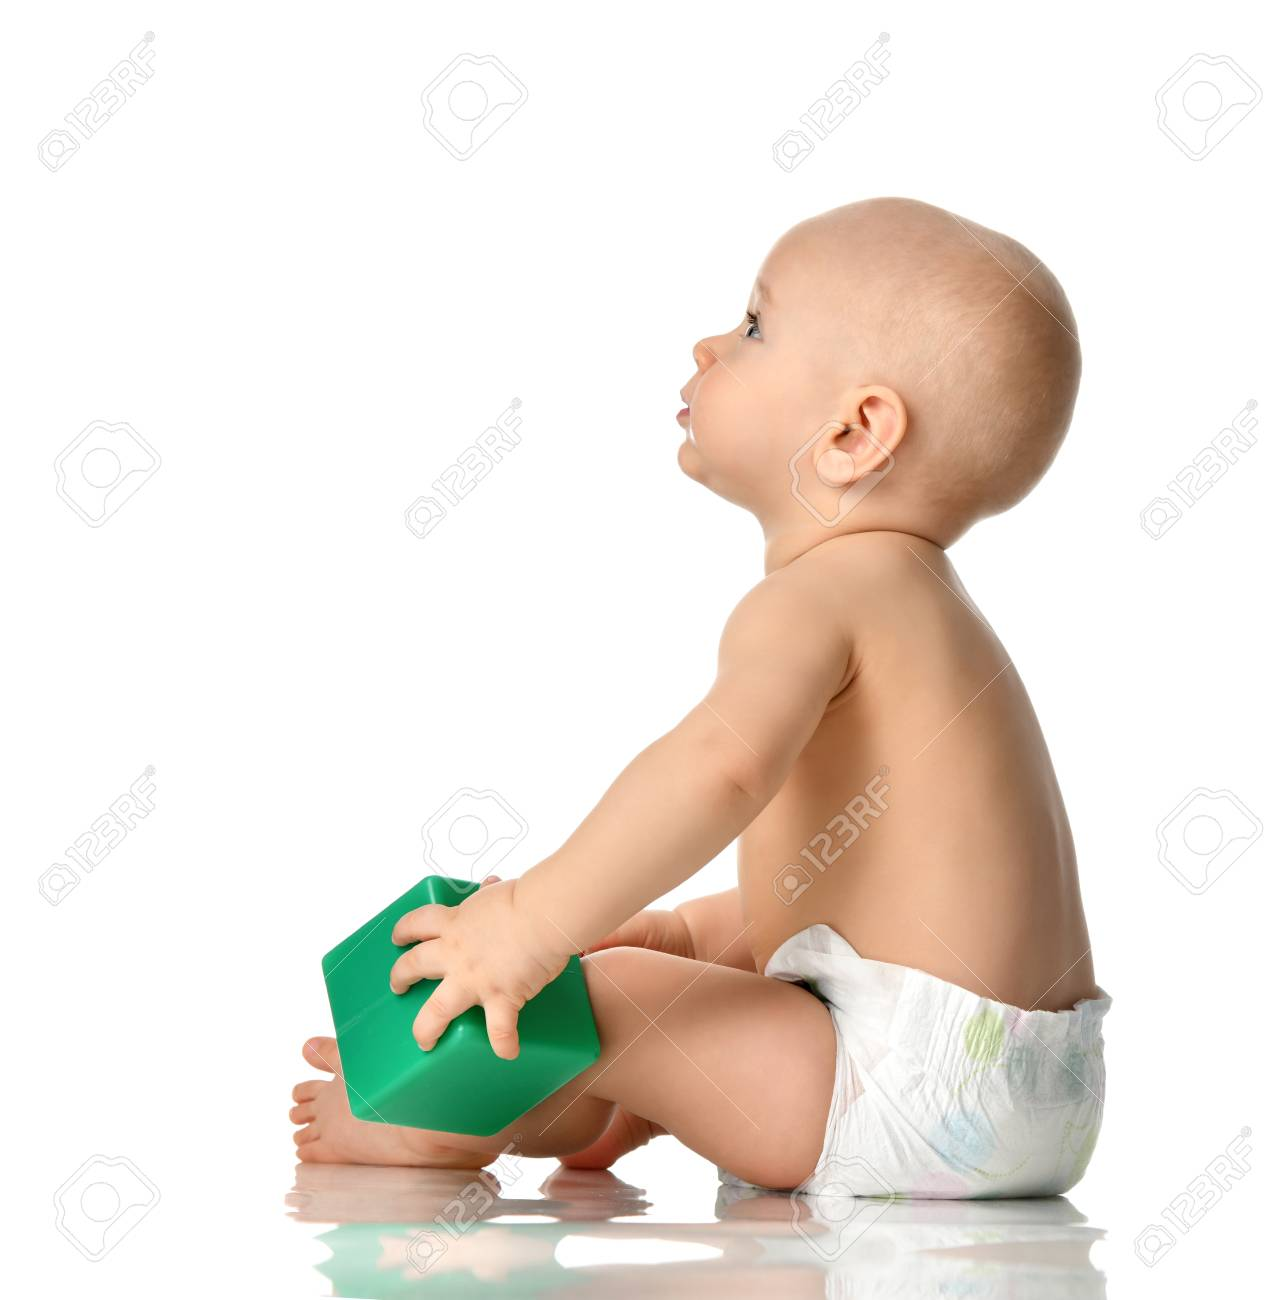 a79657f24381 Infant Child Baby Boy Toddler Sitting Naked In Diaper With Green ...